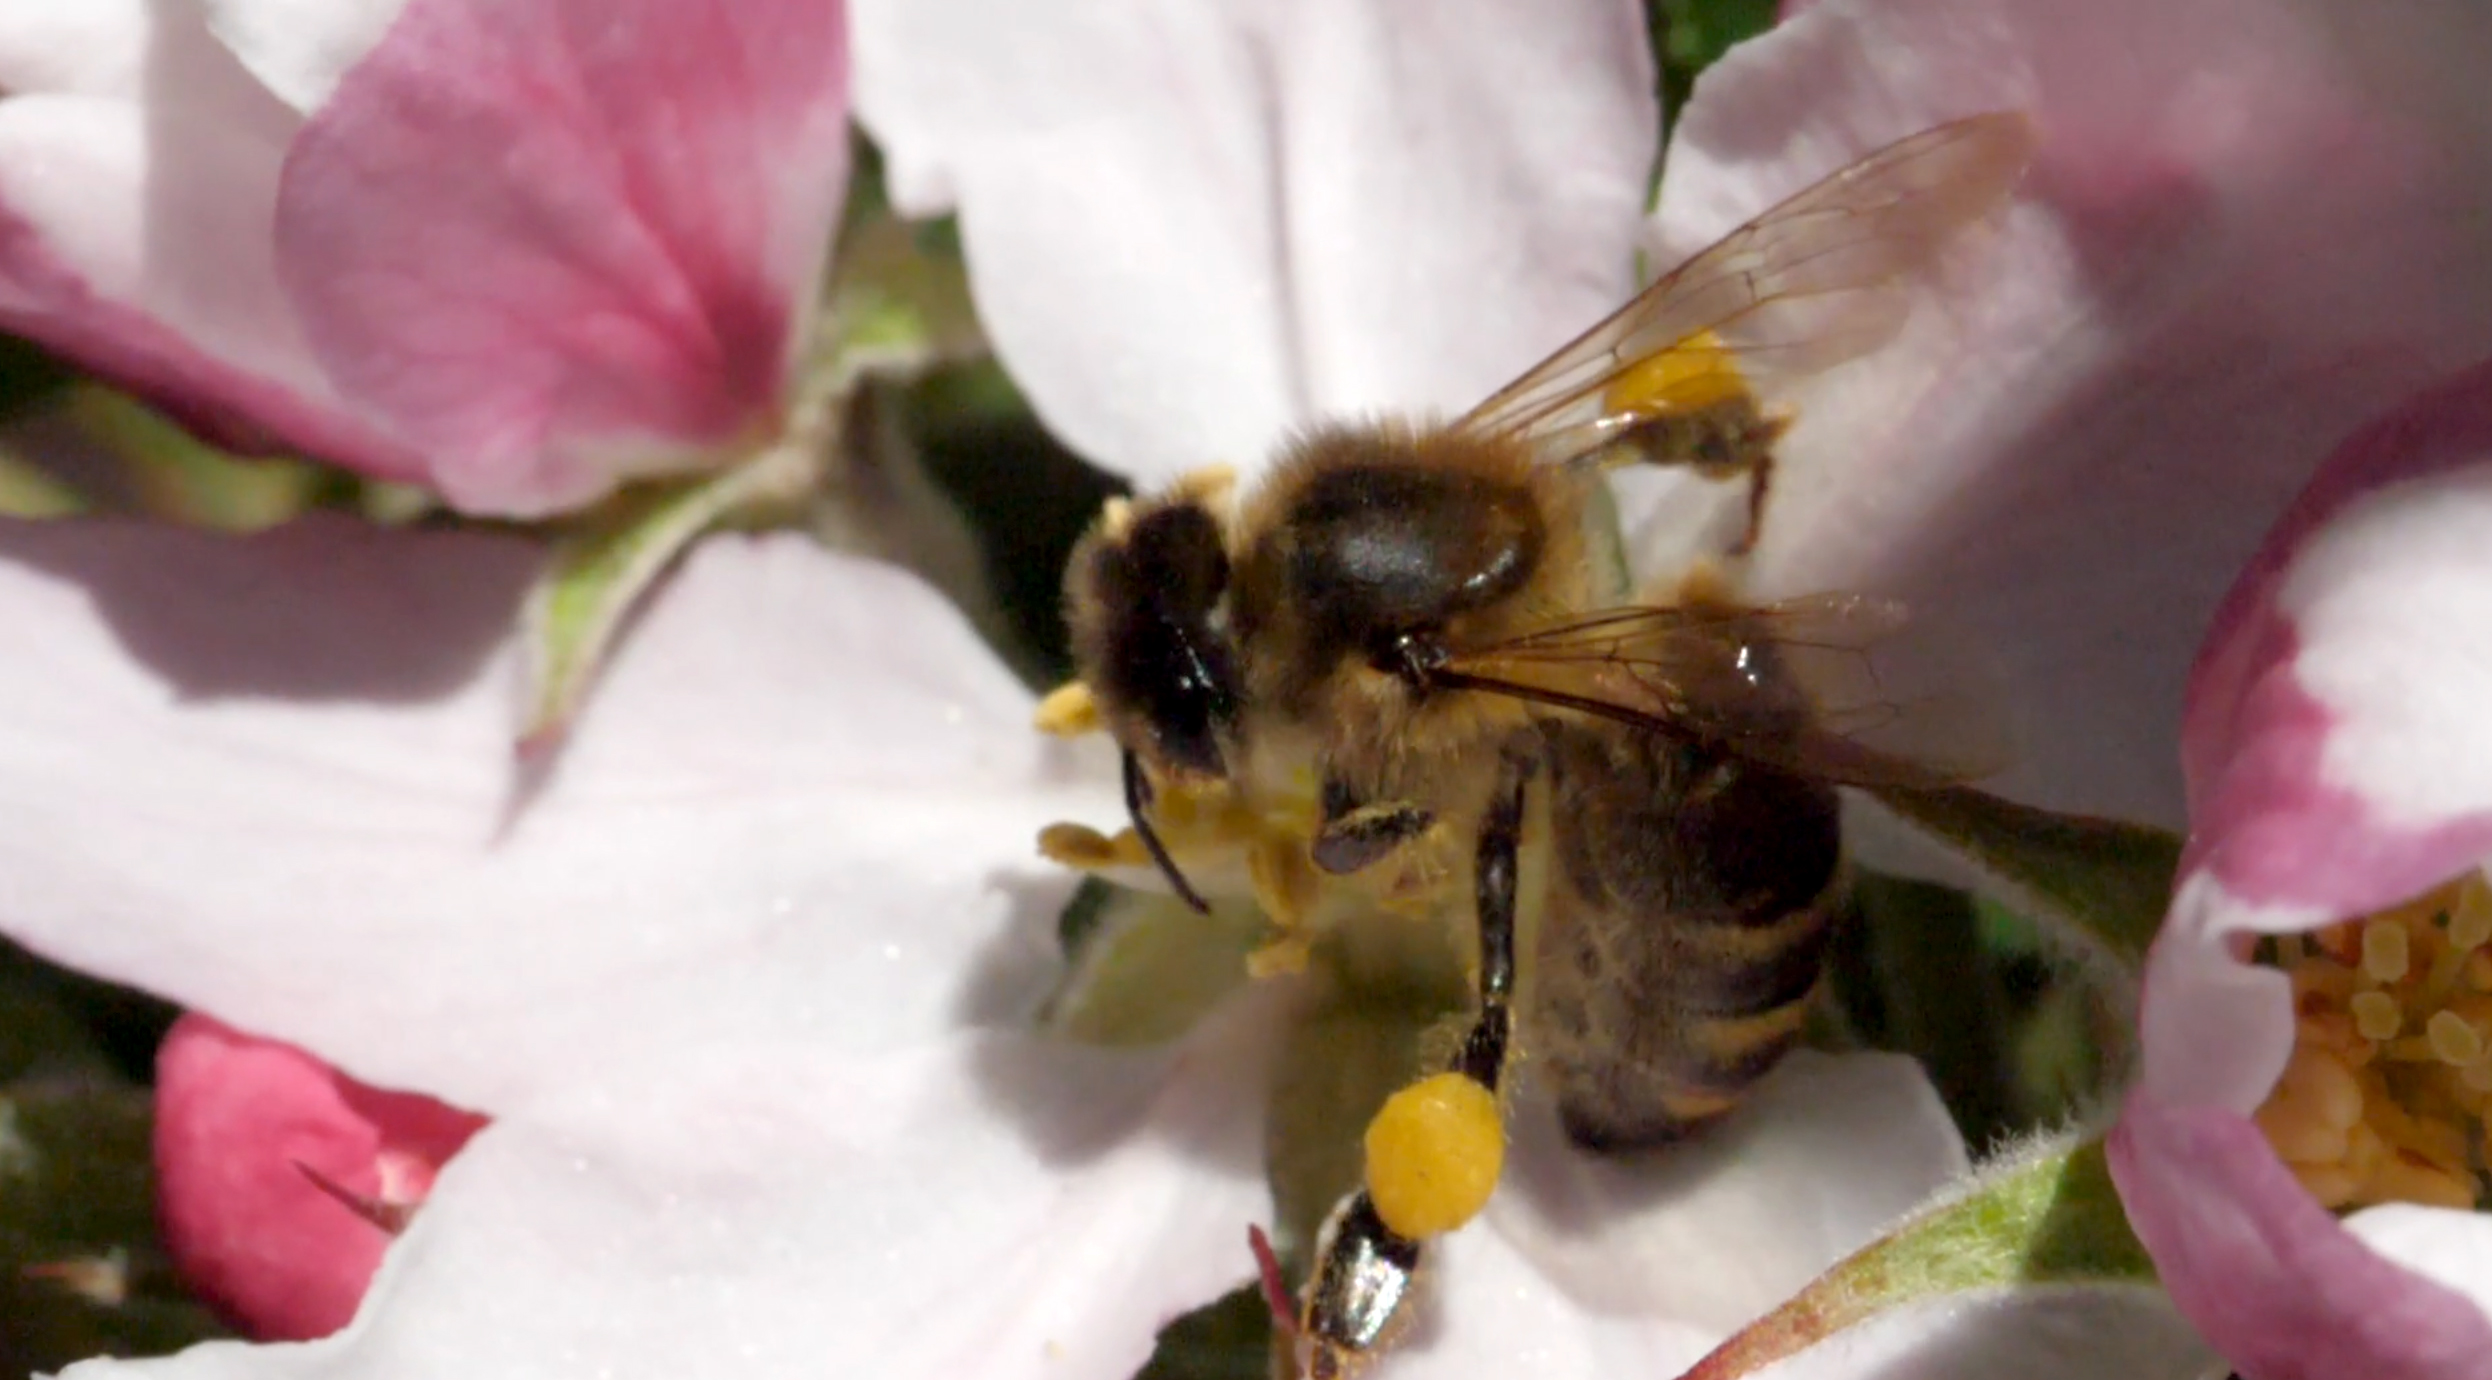 Honeybee feeding on nectar and pollen, the pollen baskets are visible